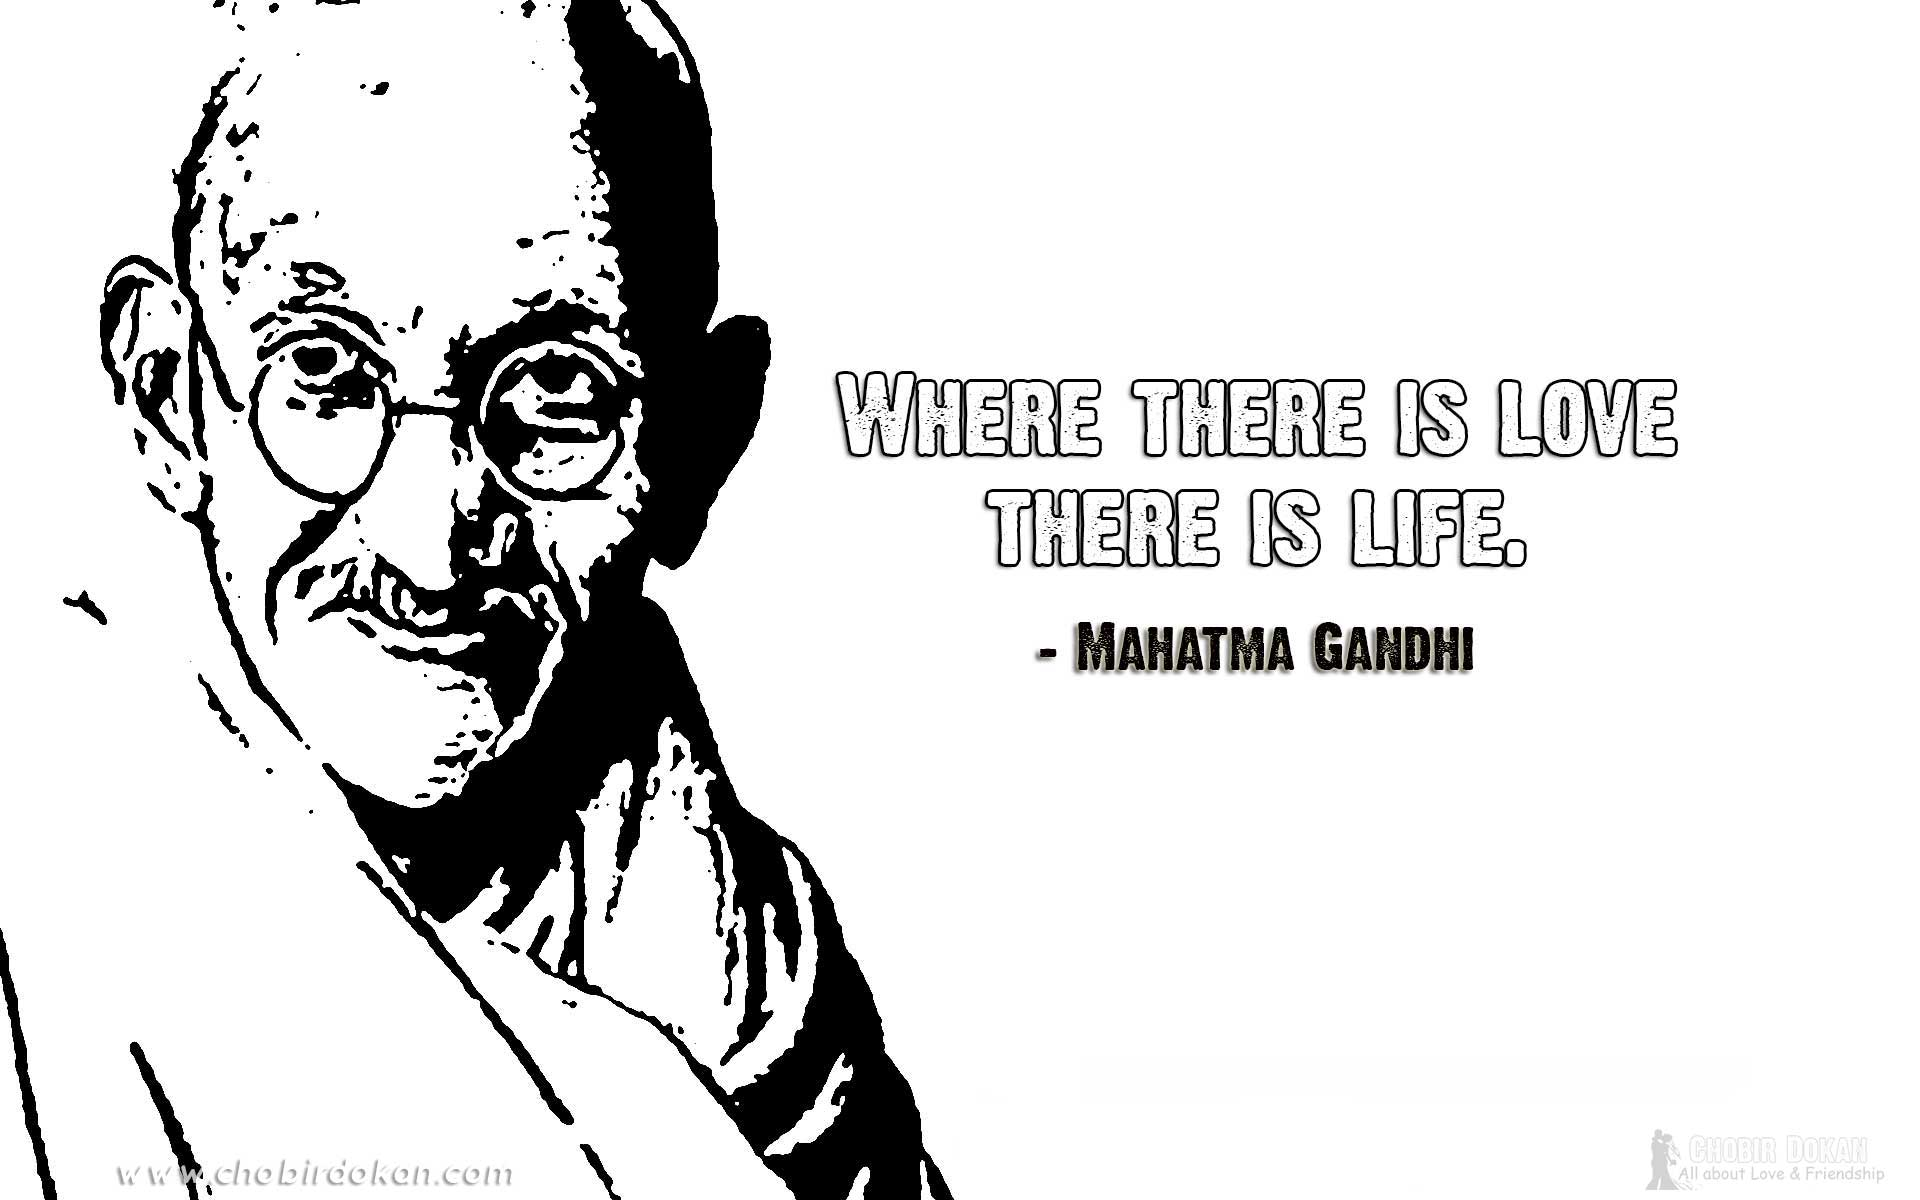 mahatma gandhi quotes love